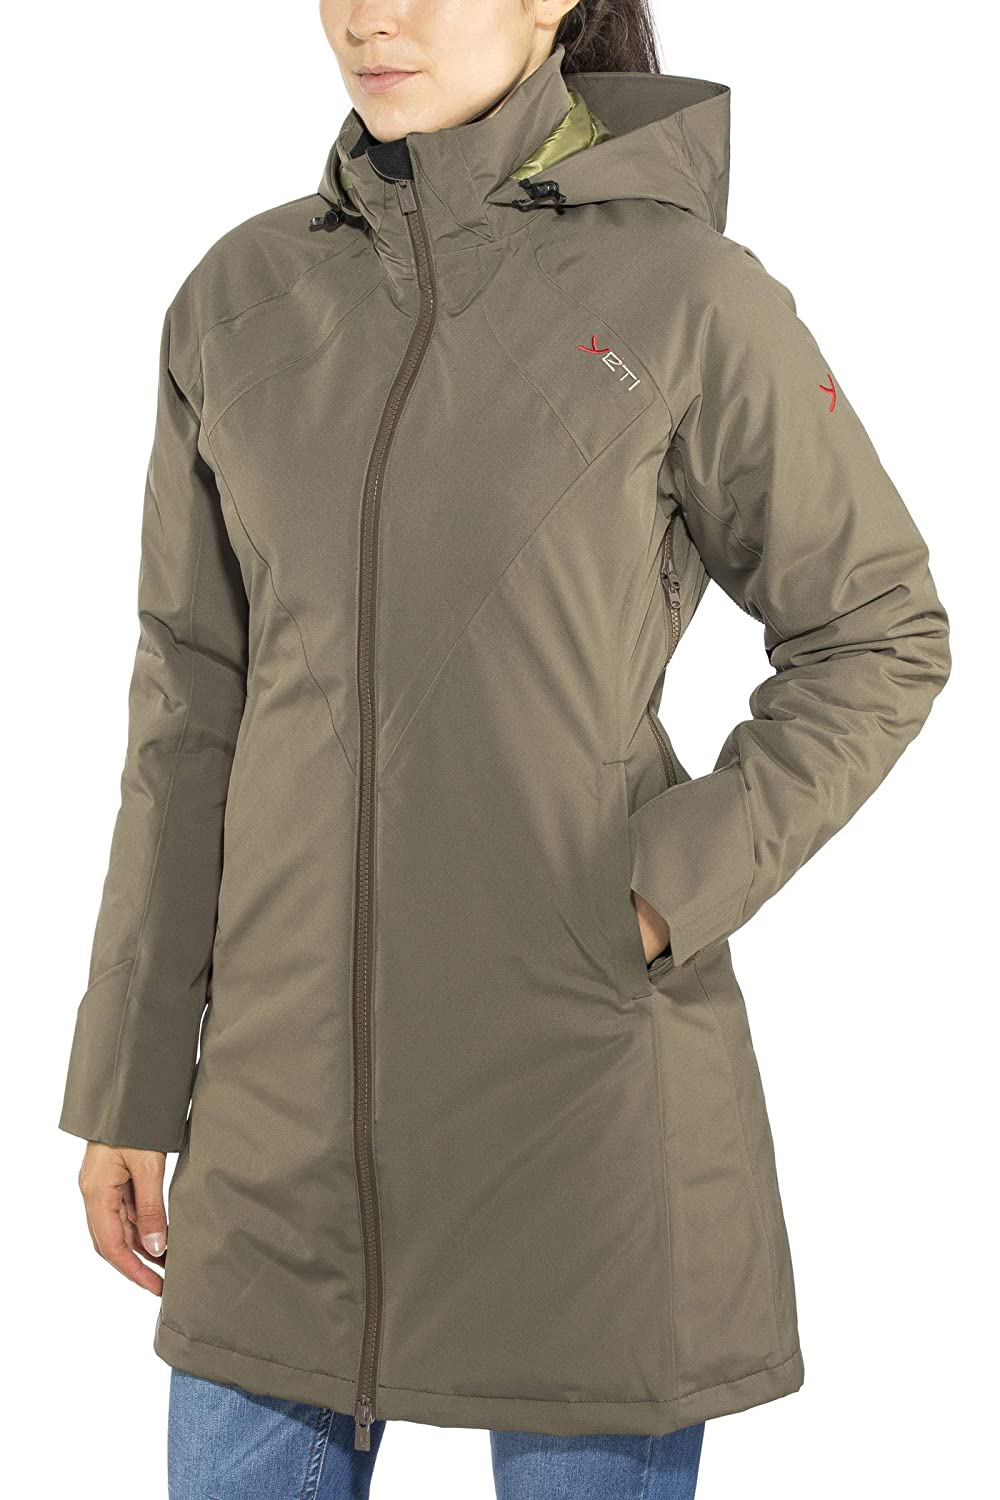 Yeti RAA Coat damen - Daunen Outdoormantel